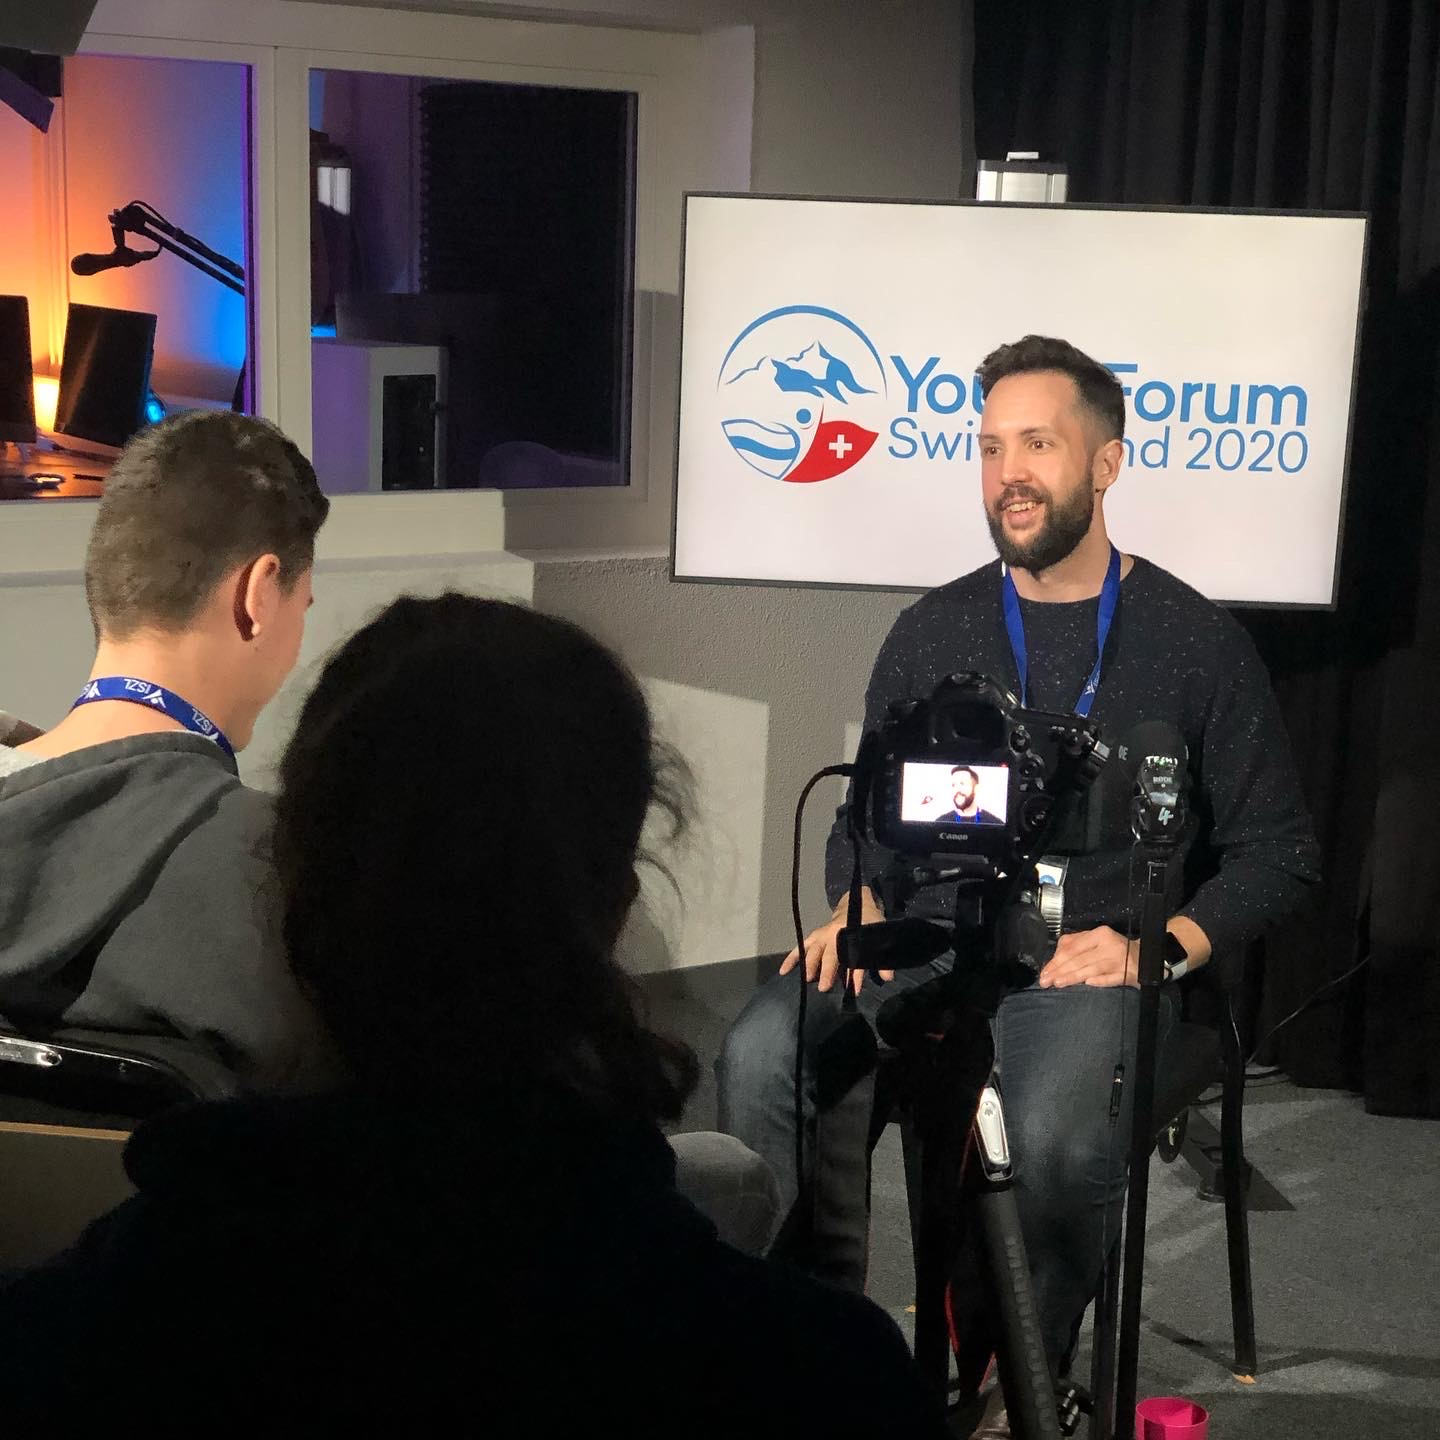 Will being interviewed at the Switzerland Youth Forum